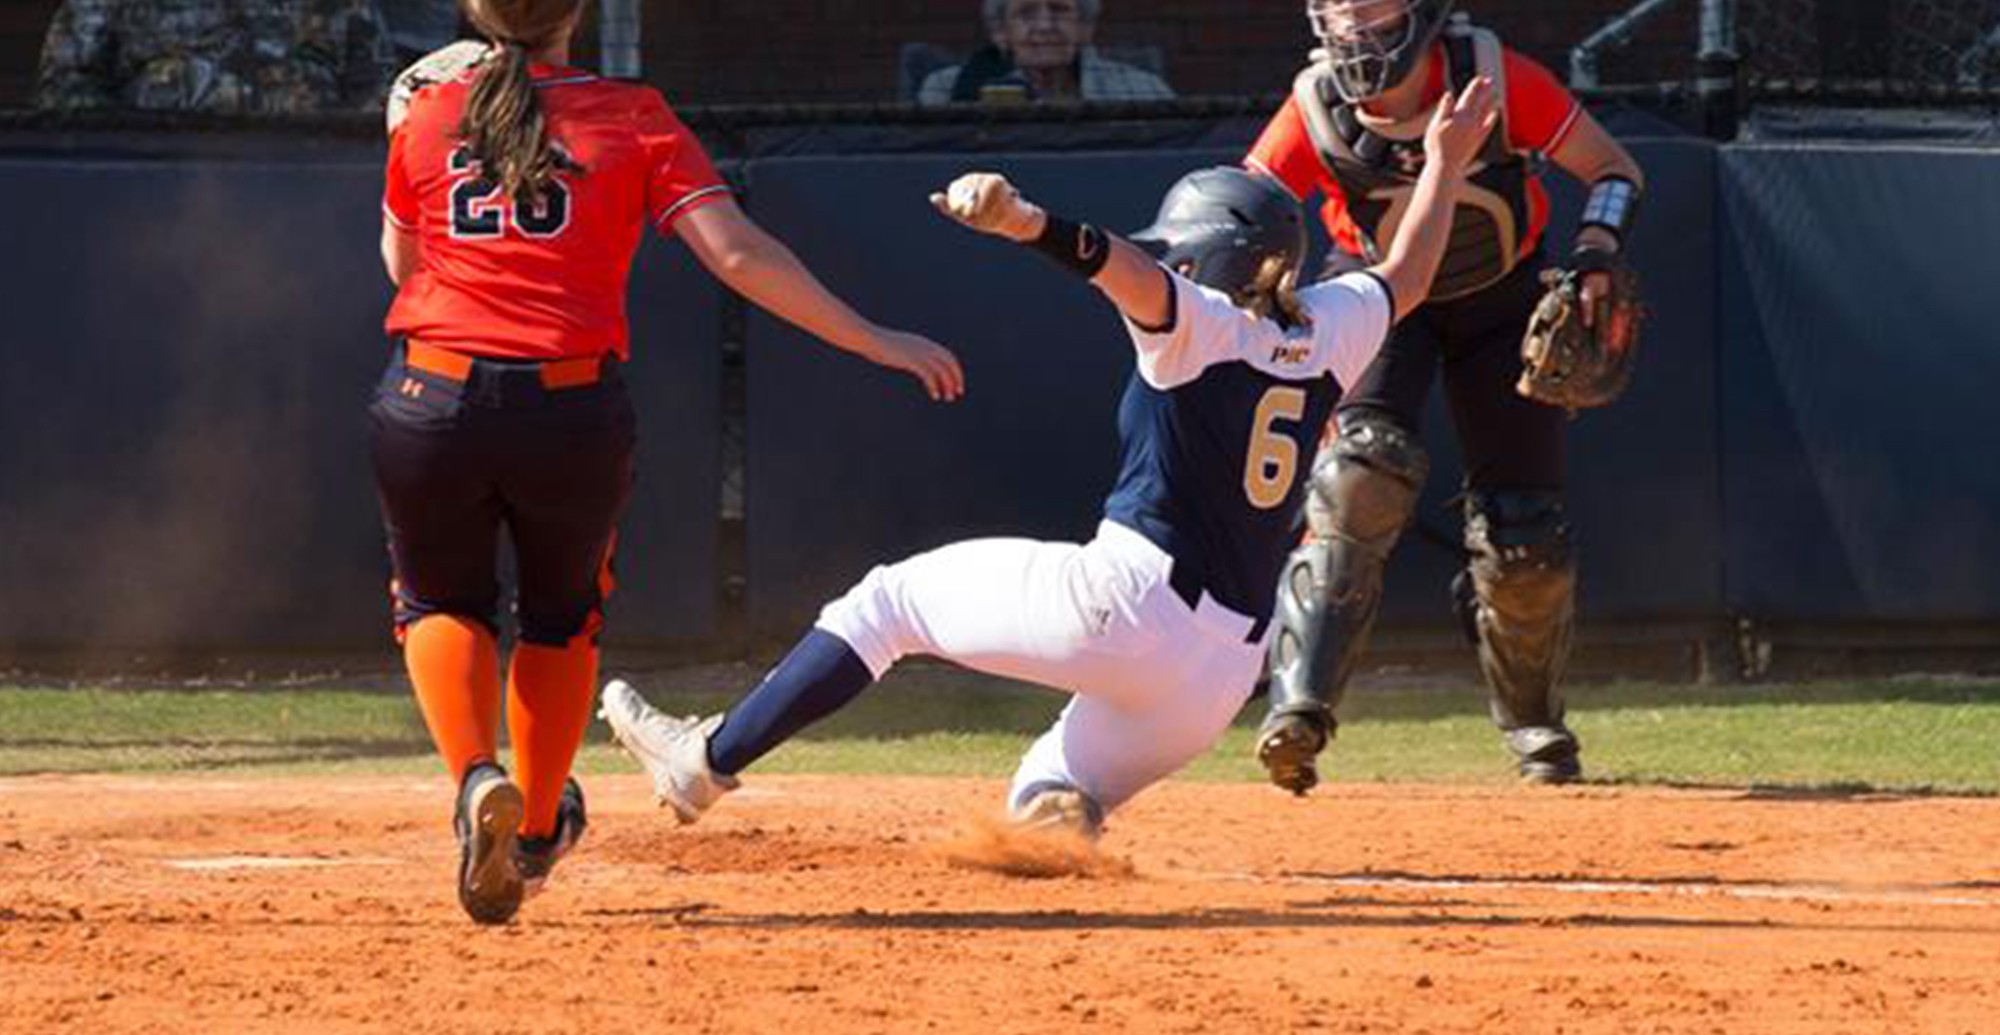 Lady Canes Upset Cougars To Advance To Semifinals